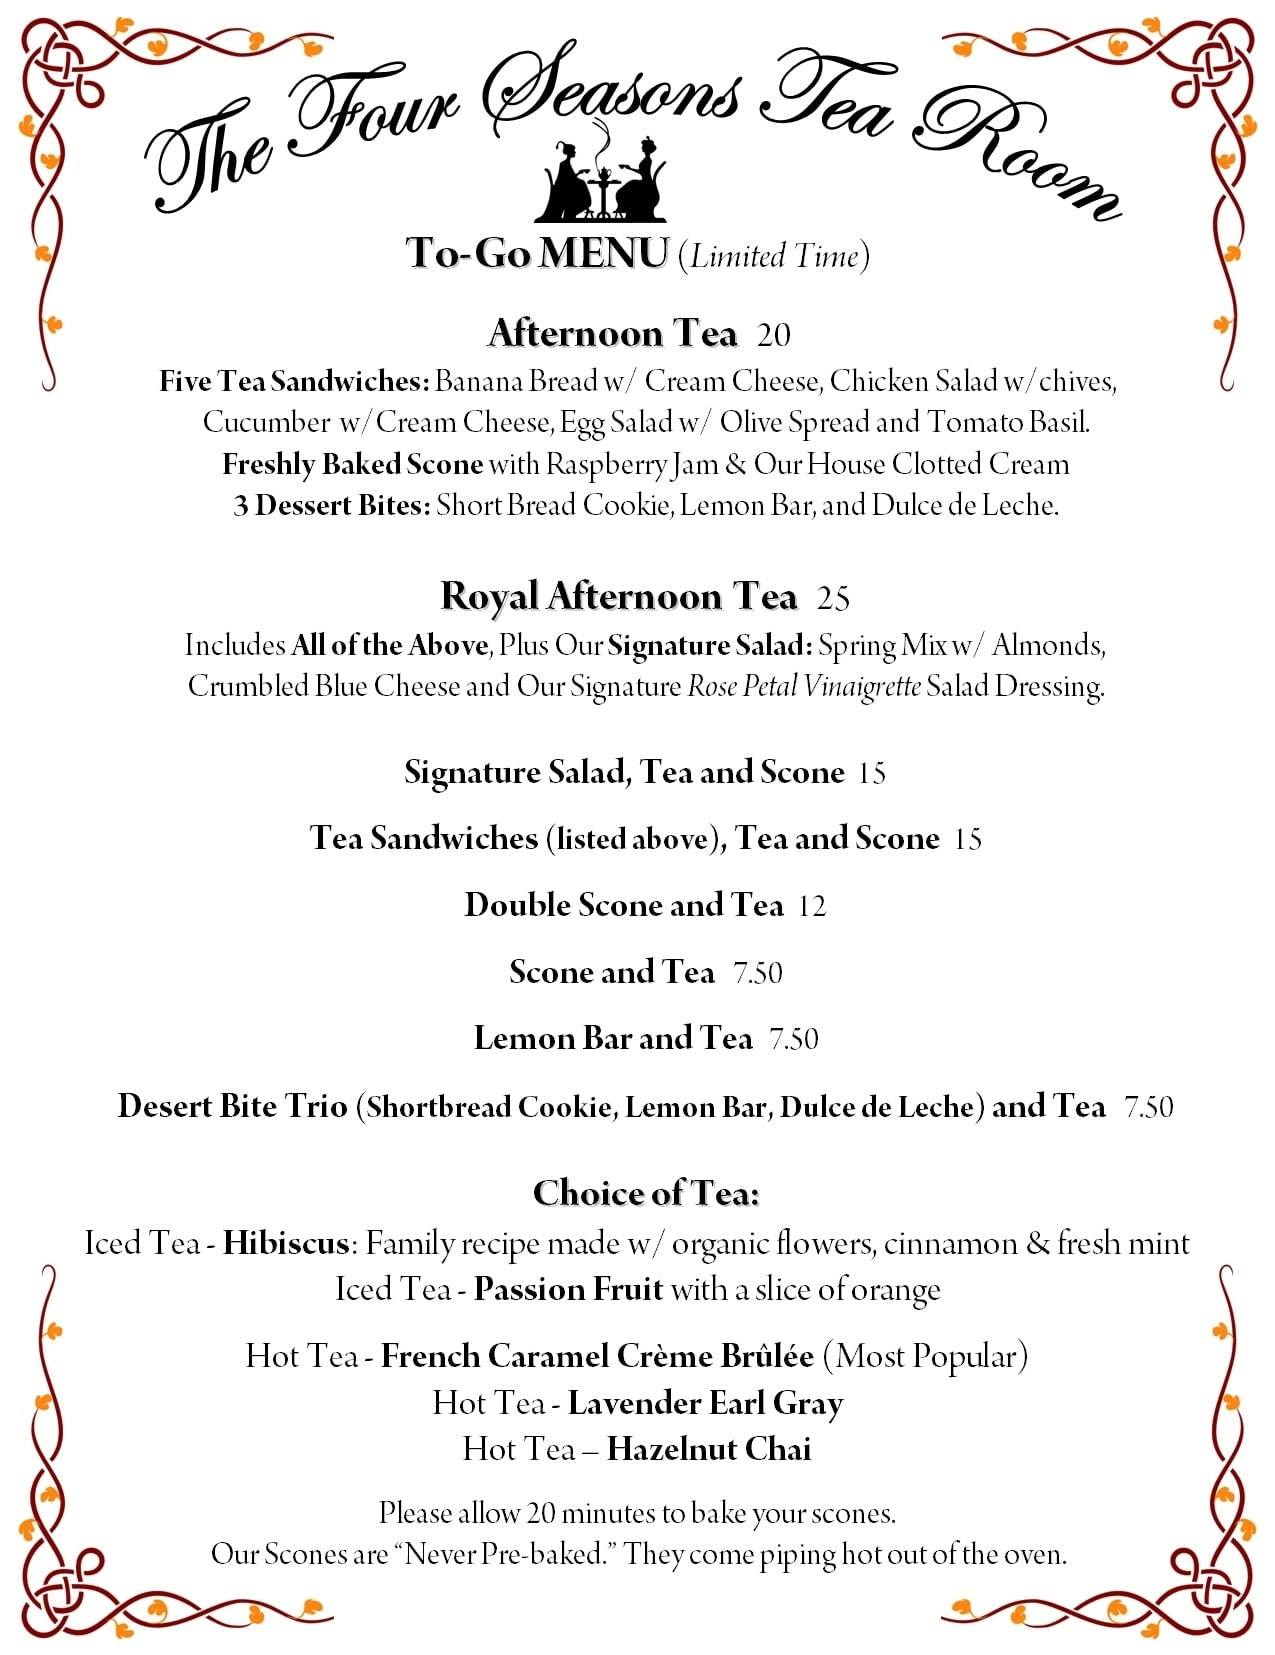 Four Seasons Tea Room menu